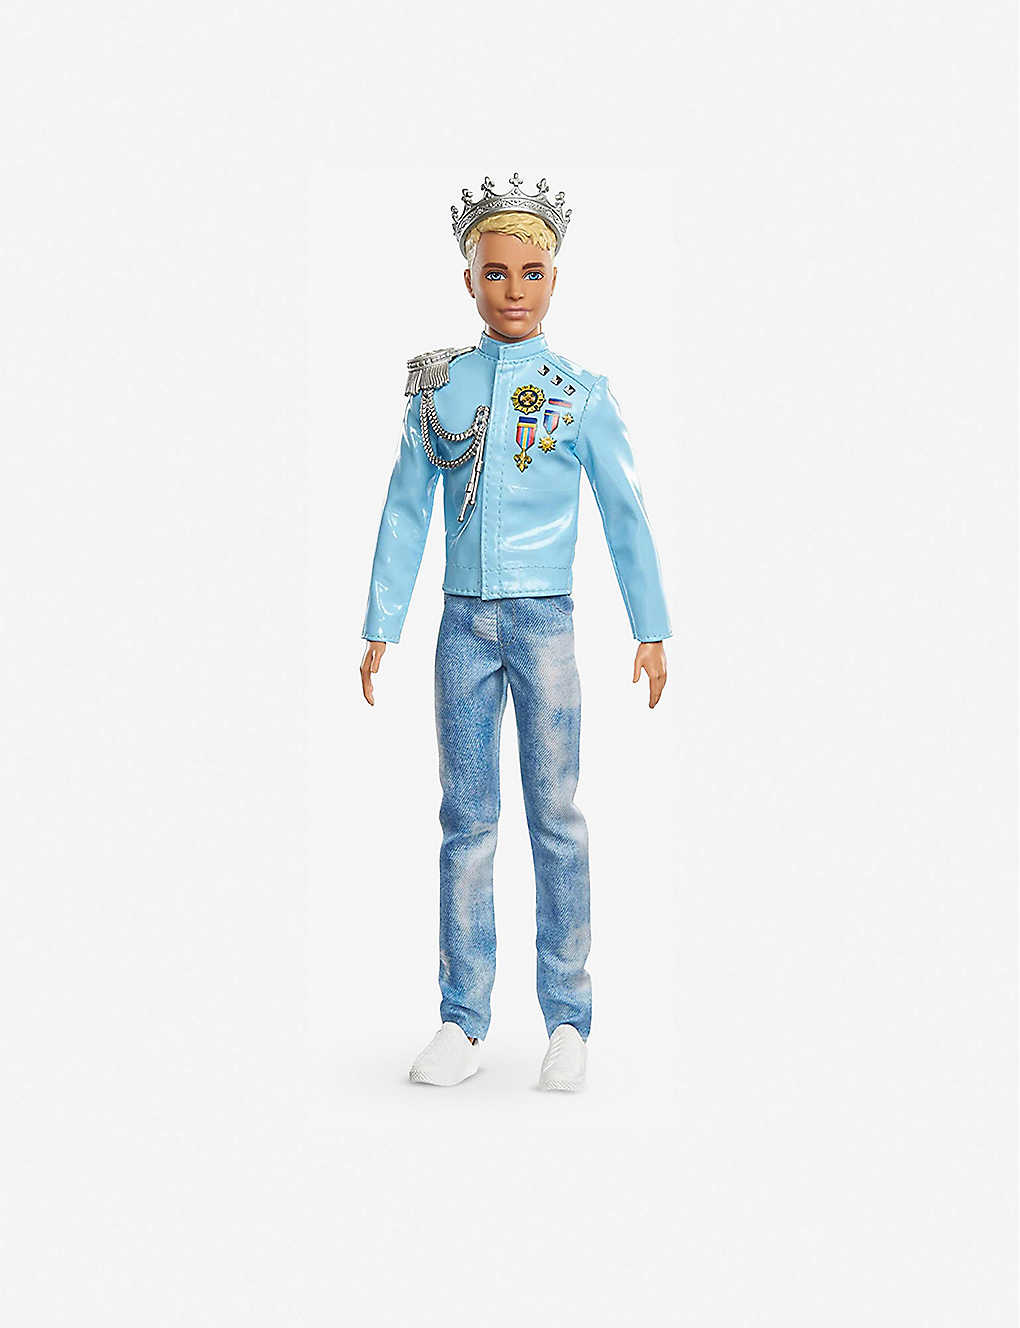 BARBIE: Barbie Princess Adventure Prince Ken doll